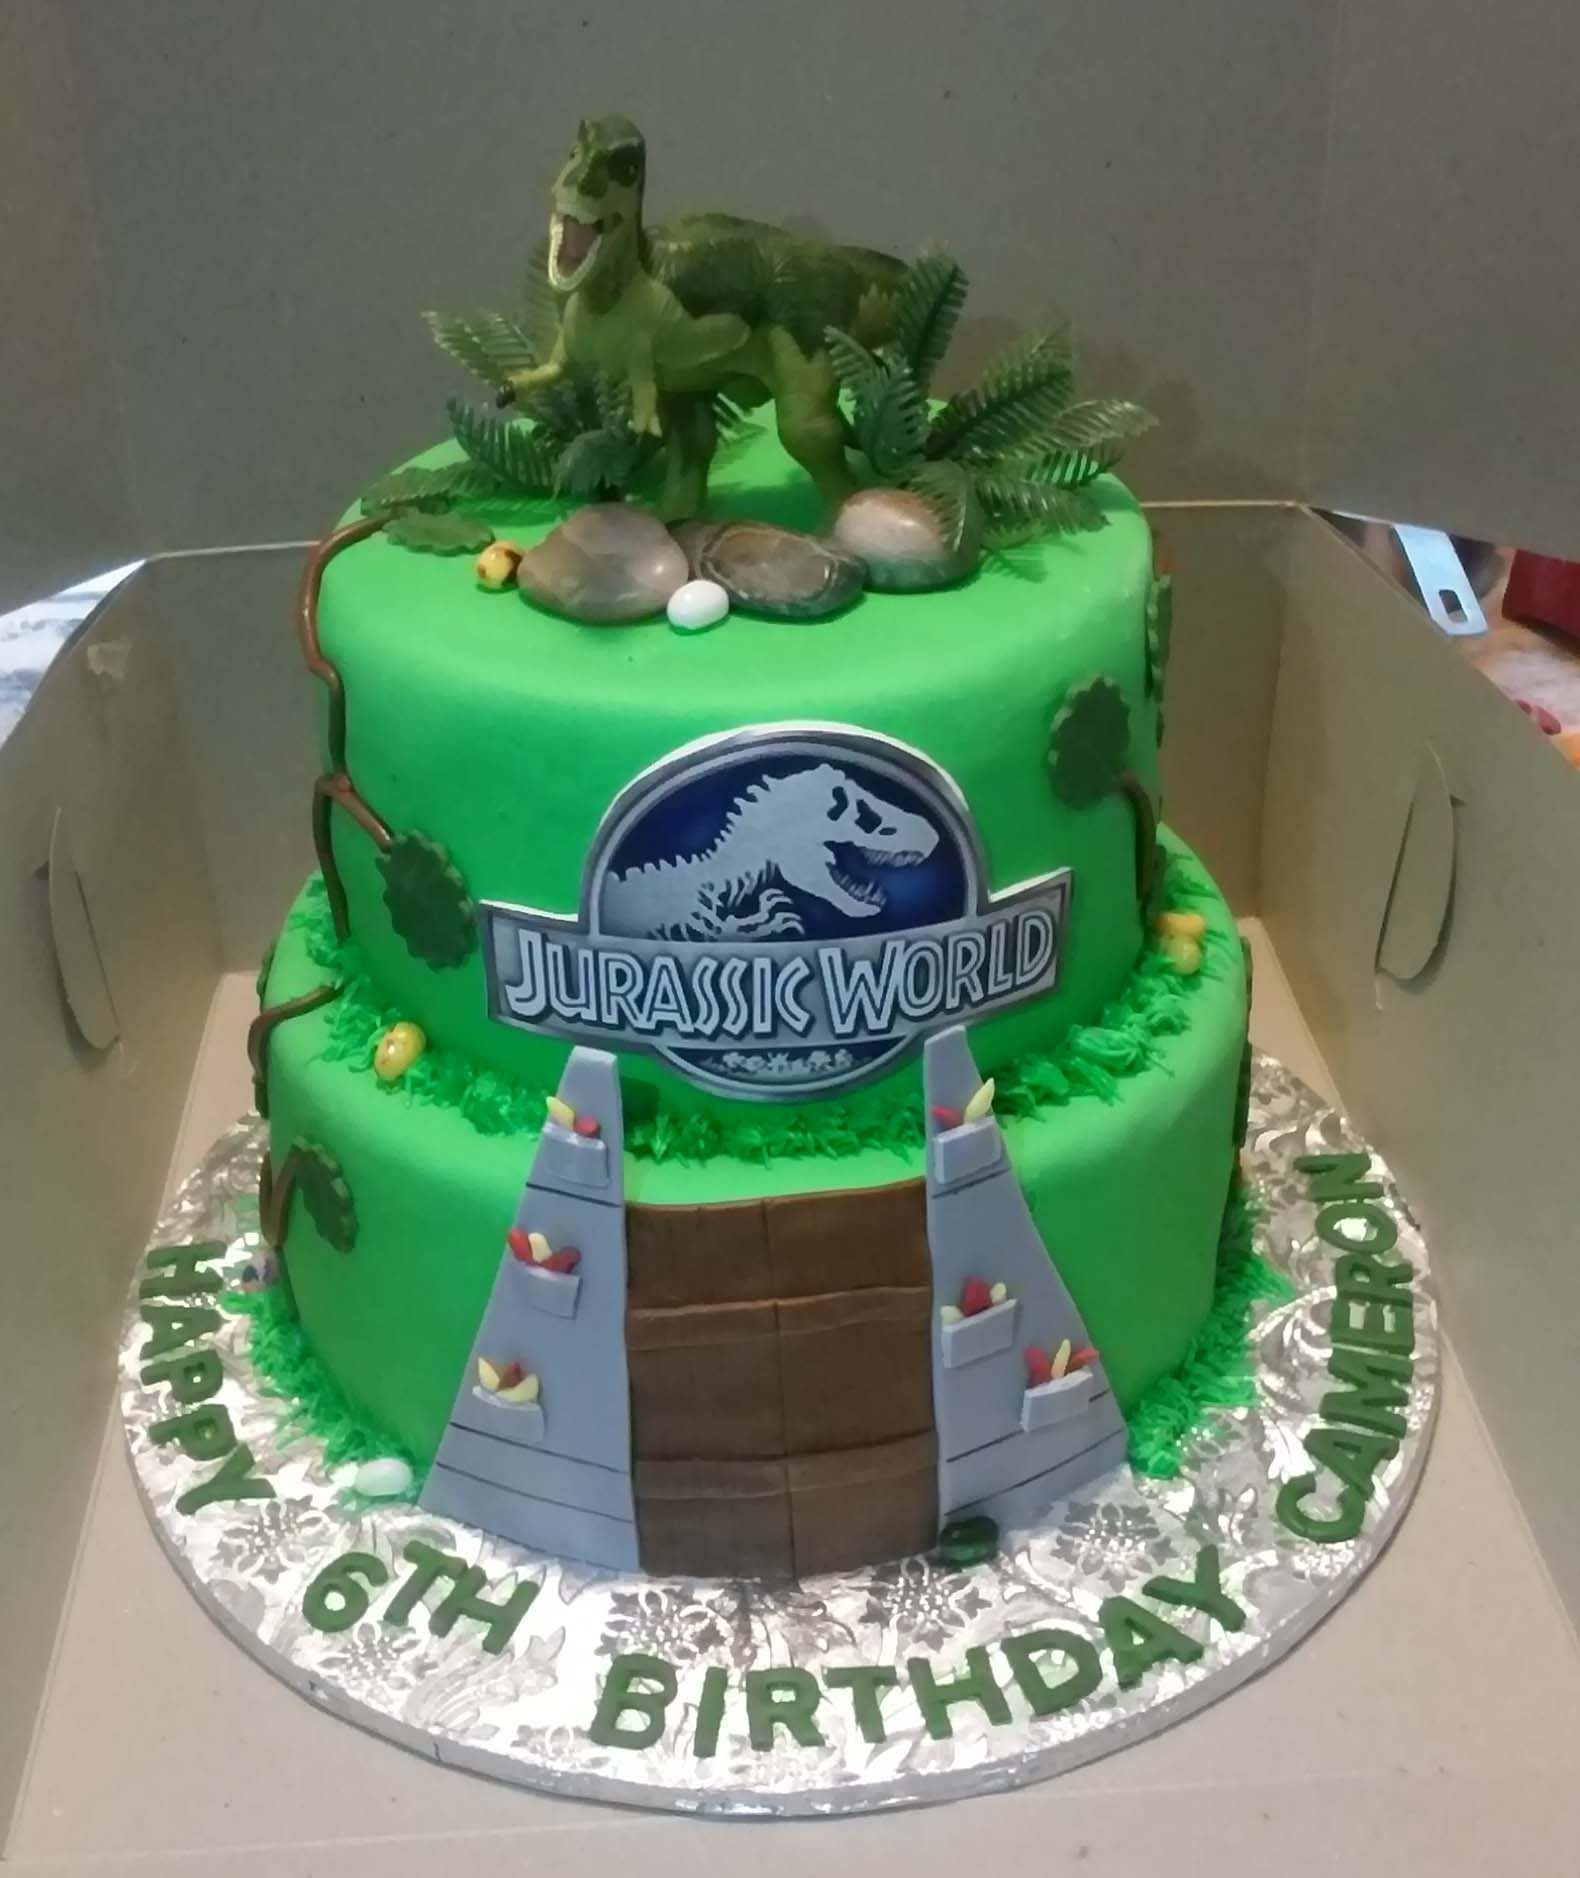 Best ideas about Jurassic World Birthday Cake . Save or Pin 2 Tier Jurassic World Themed Birthday Cake CakeCentral Now.